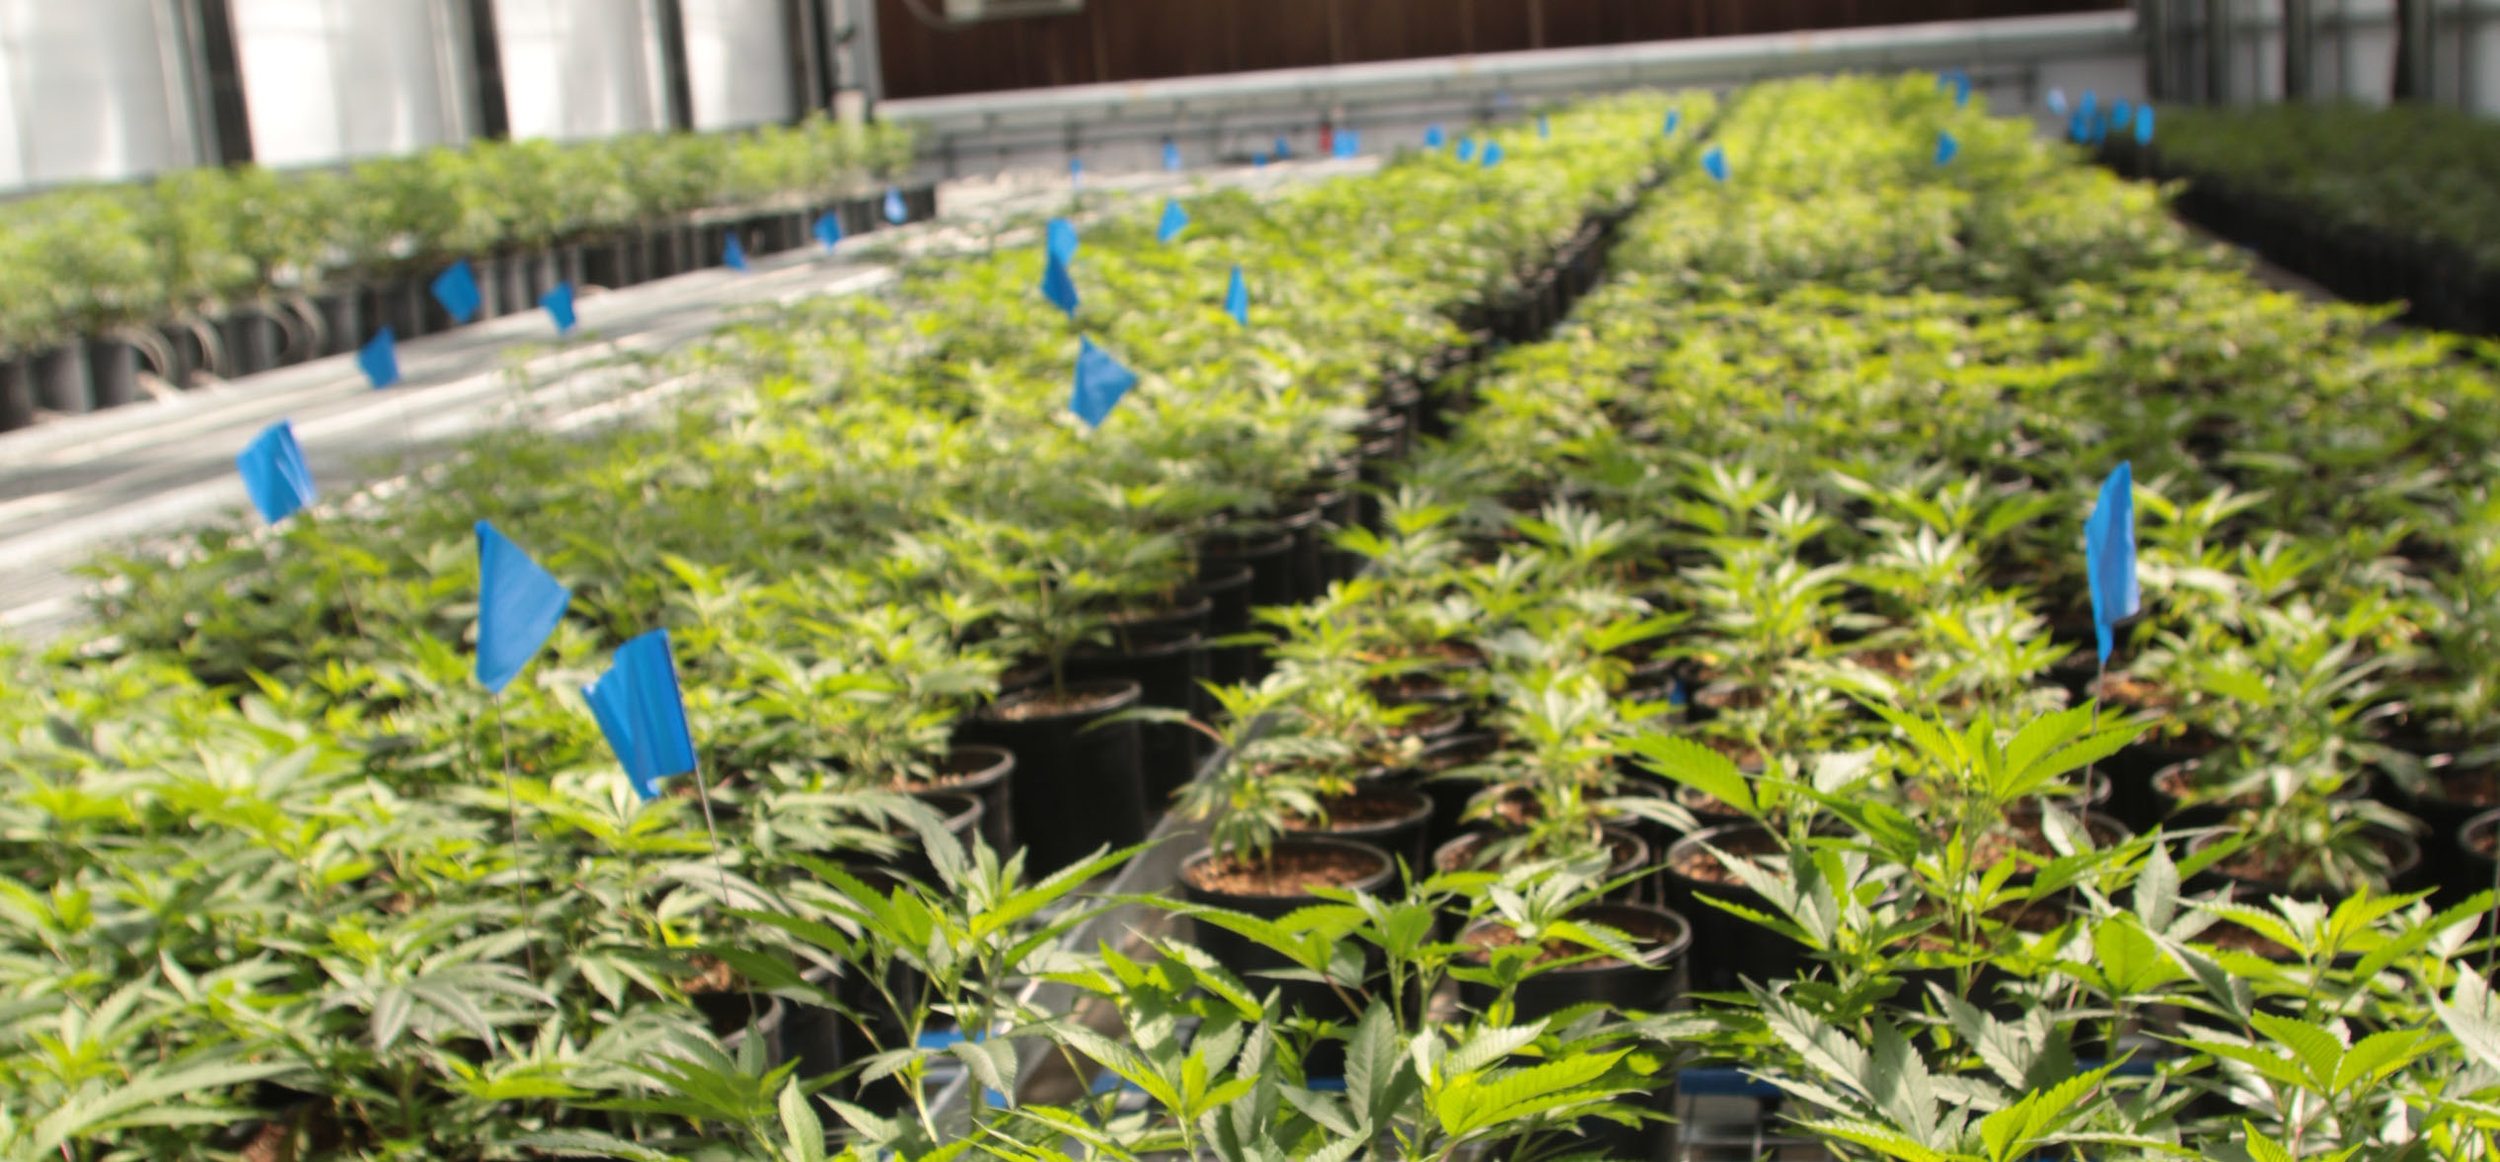 CONFIDENTIAL CANNABIS CULTIVATOR -